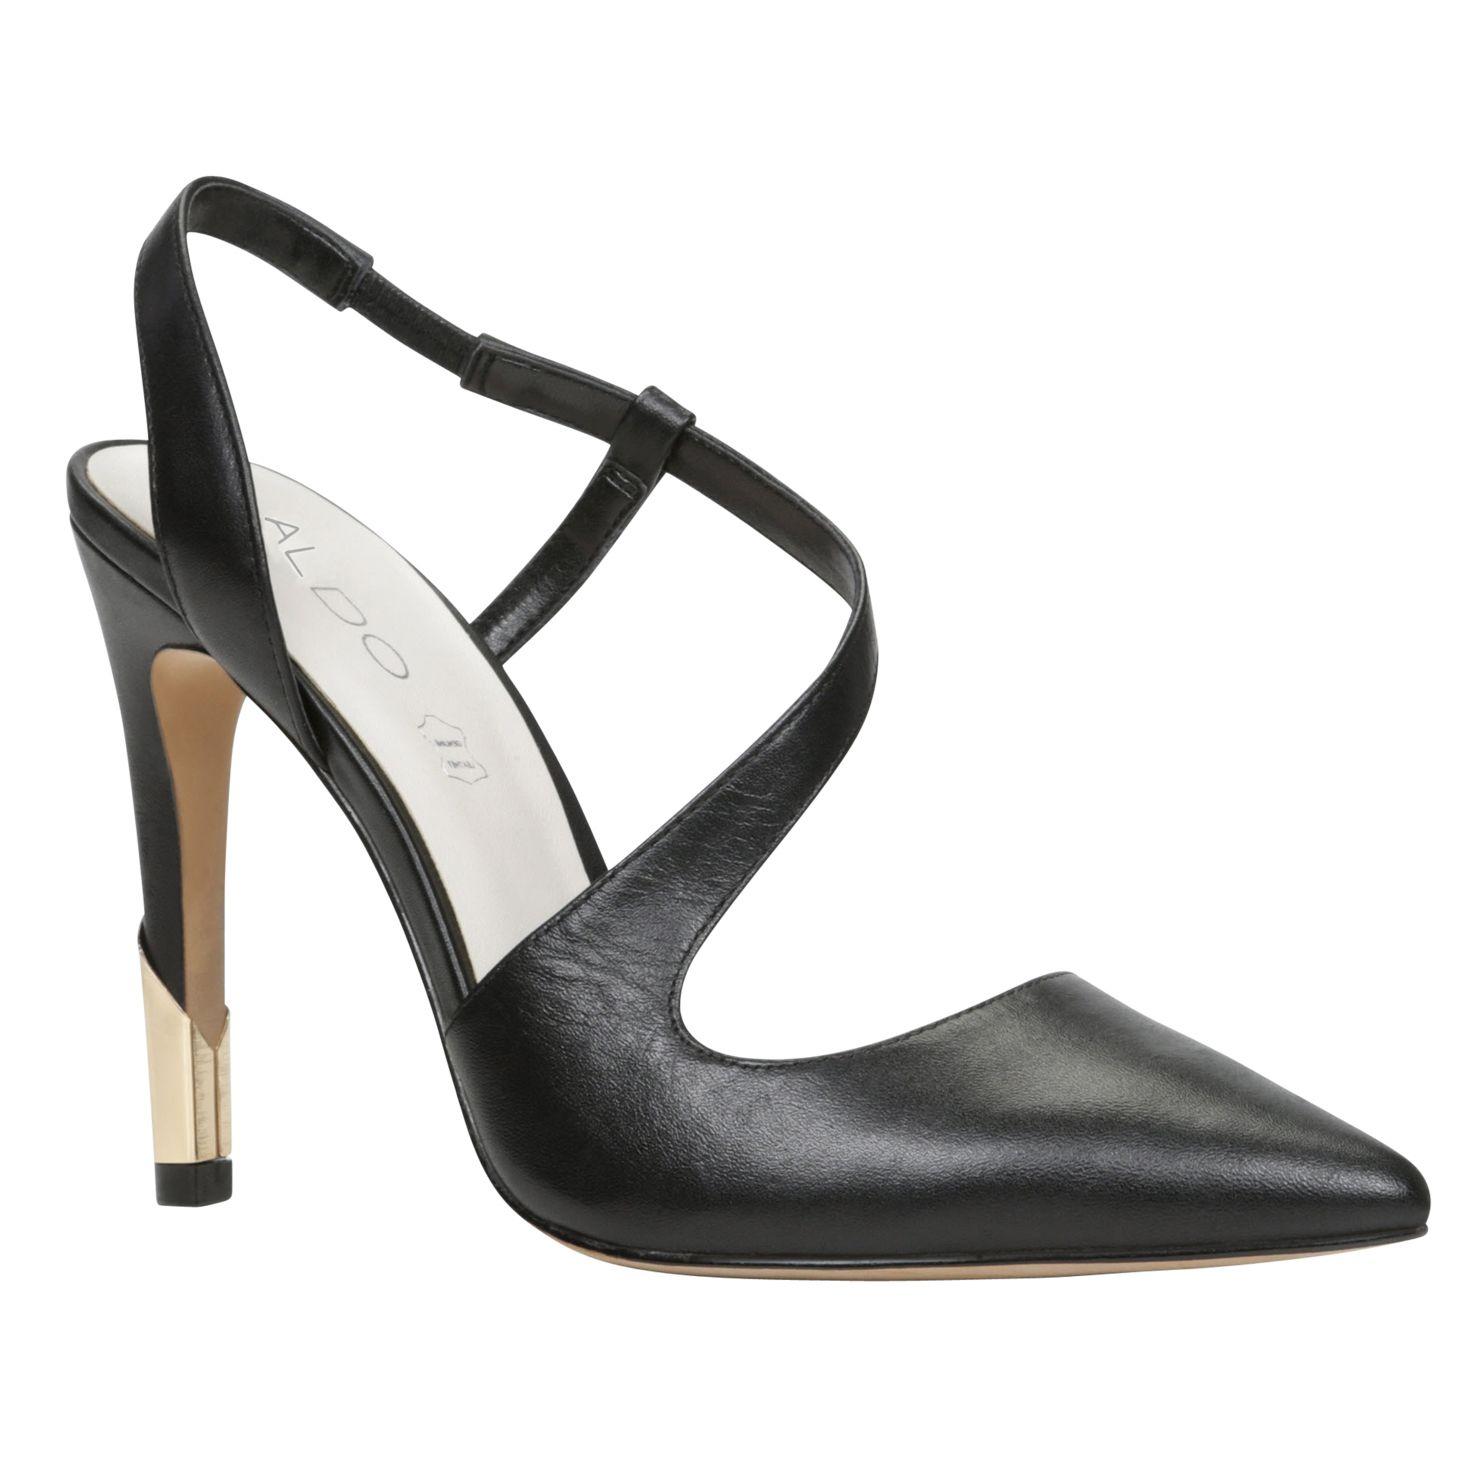 Therarwen pointed toe court shoes